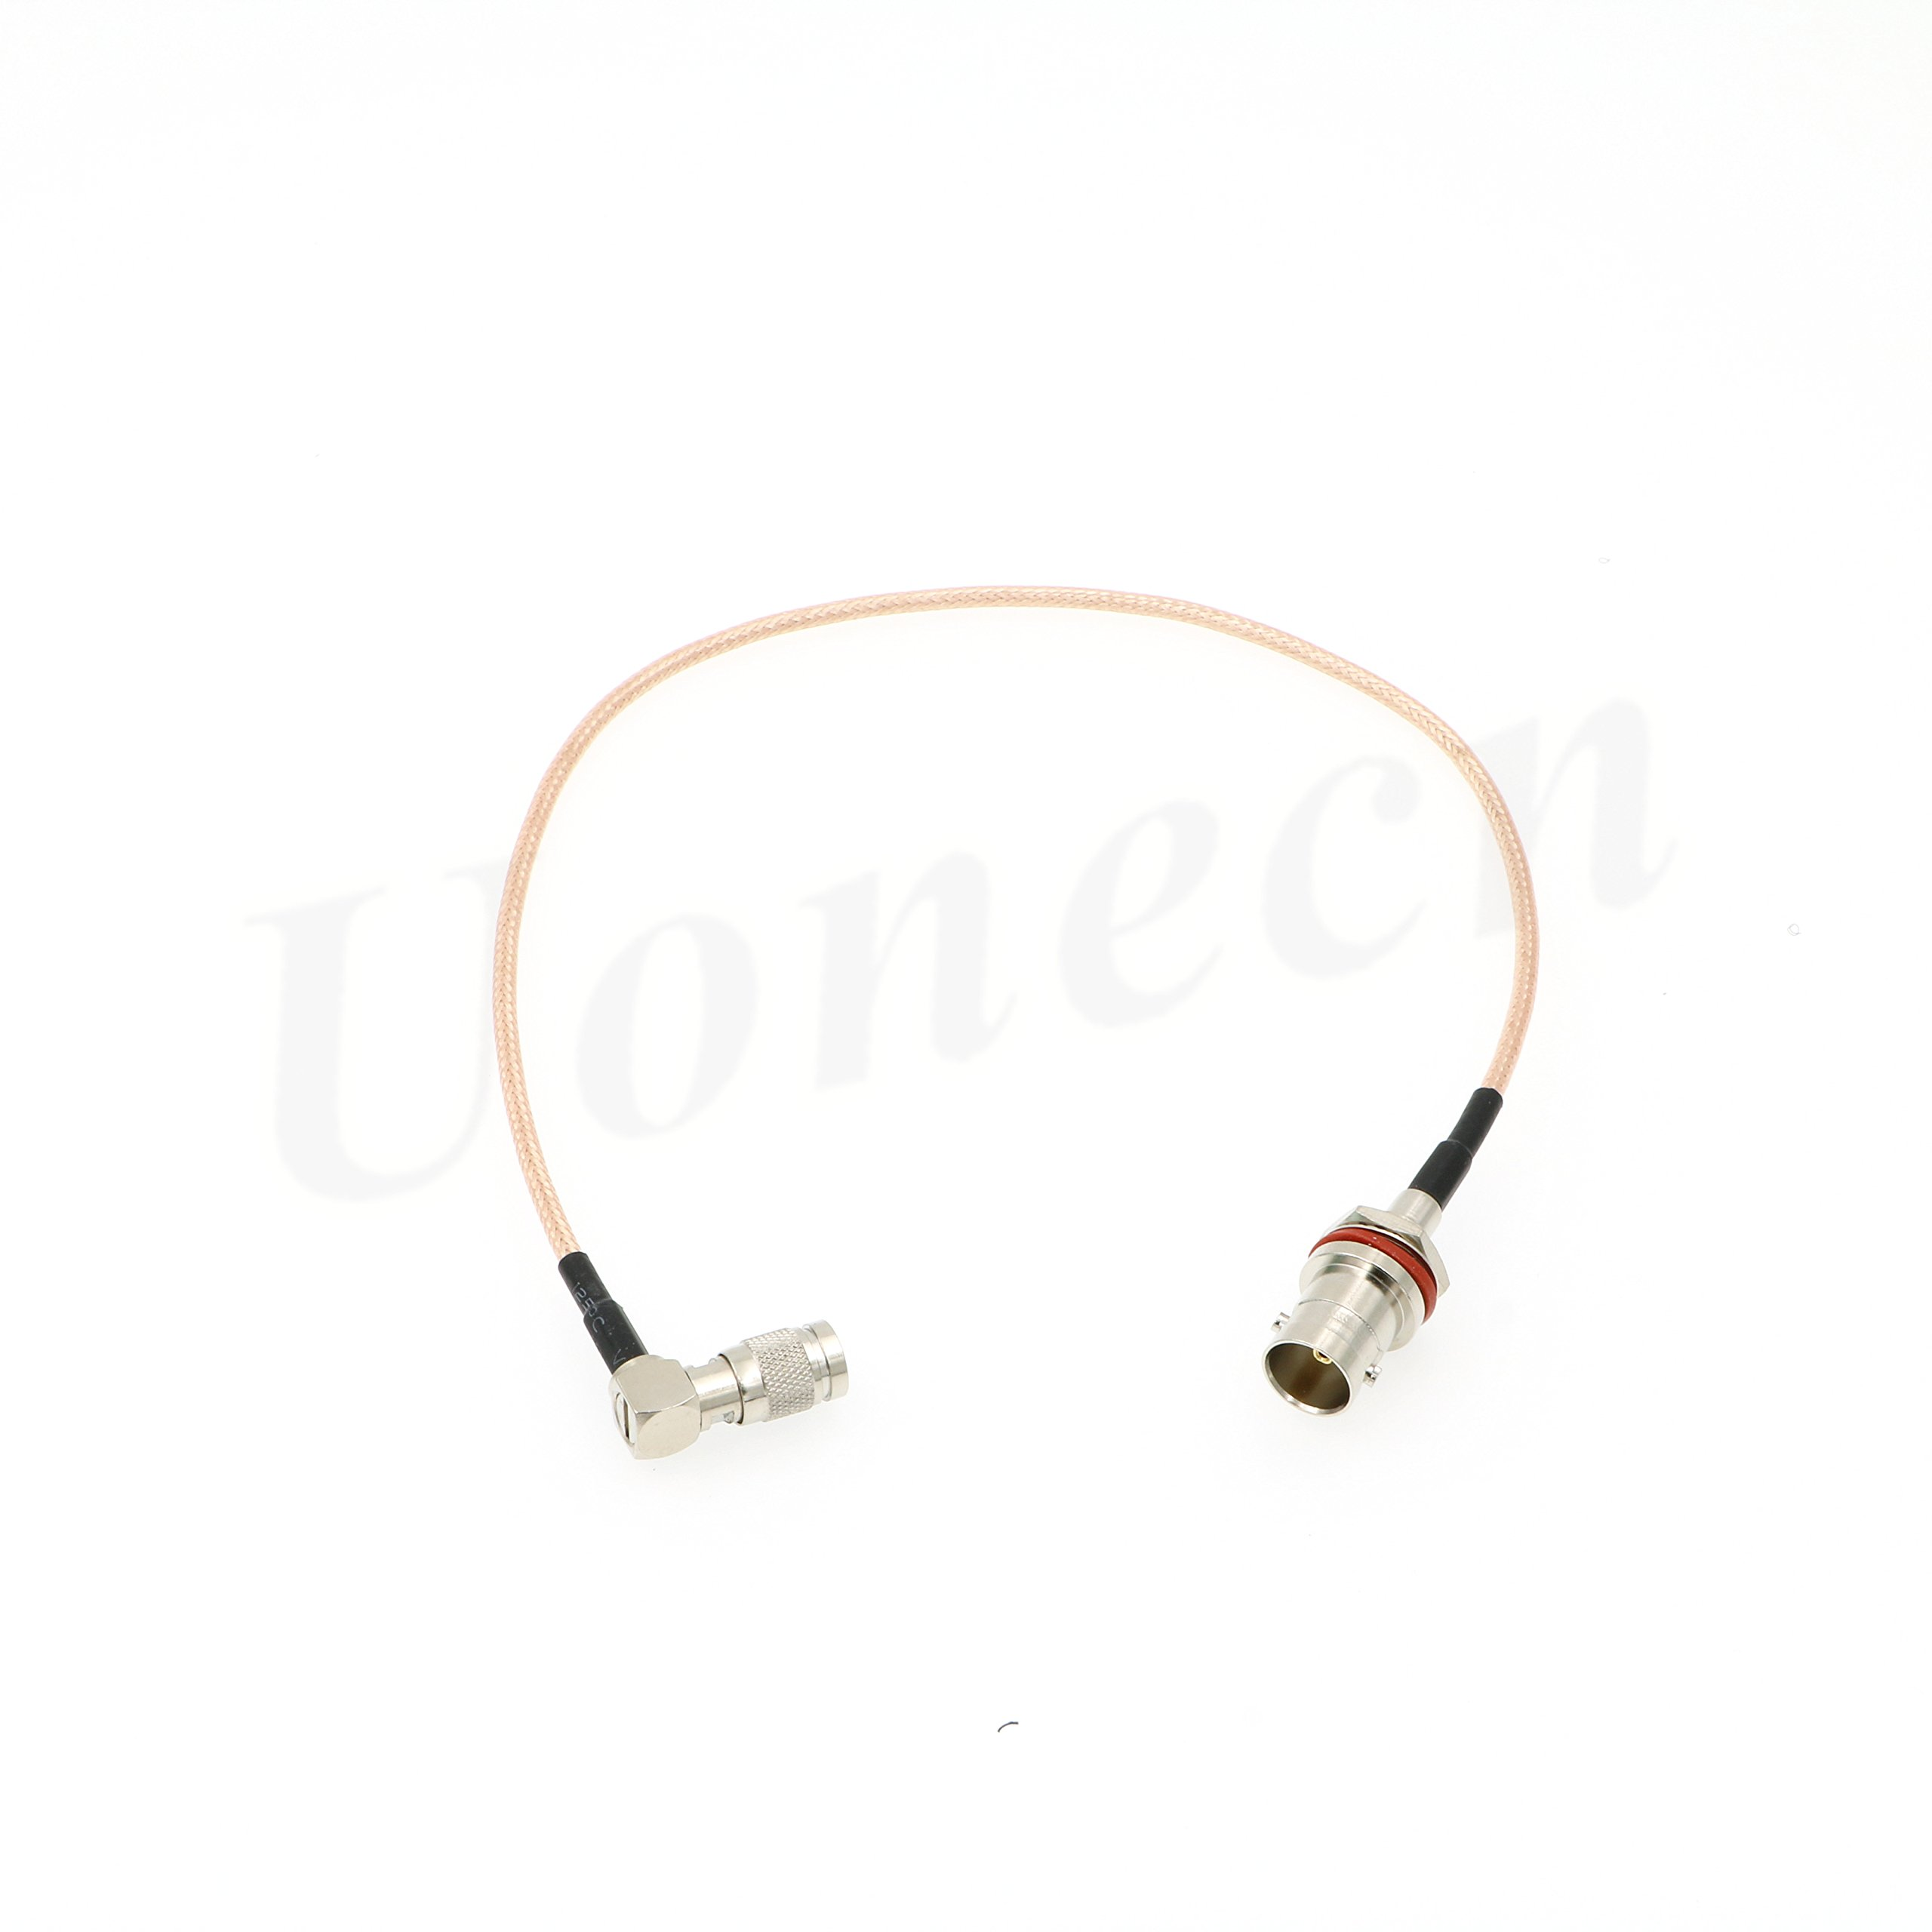 HD SDI DIN 1.0/2.3 right angle to BNC Female RG179 cable for Blackmagic HyperDeck Shuttle 75ohm